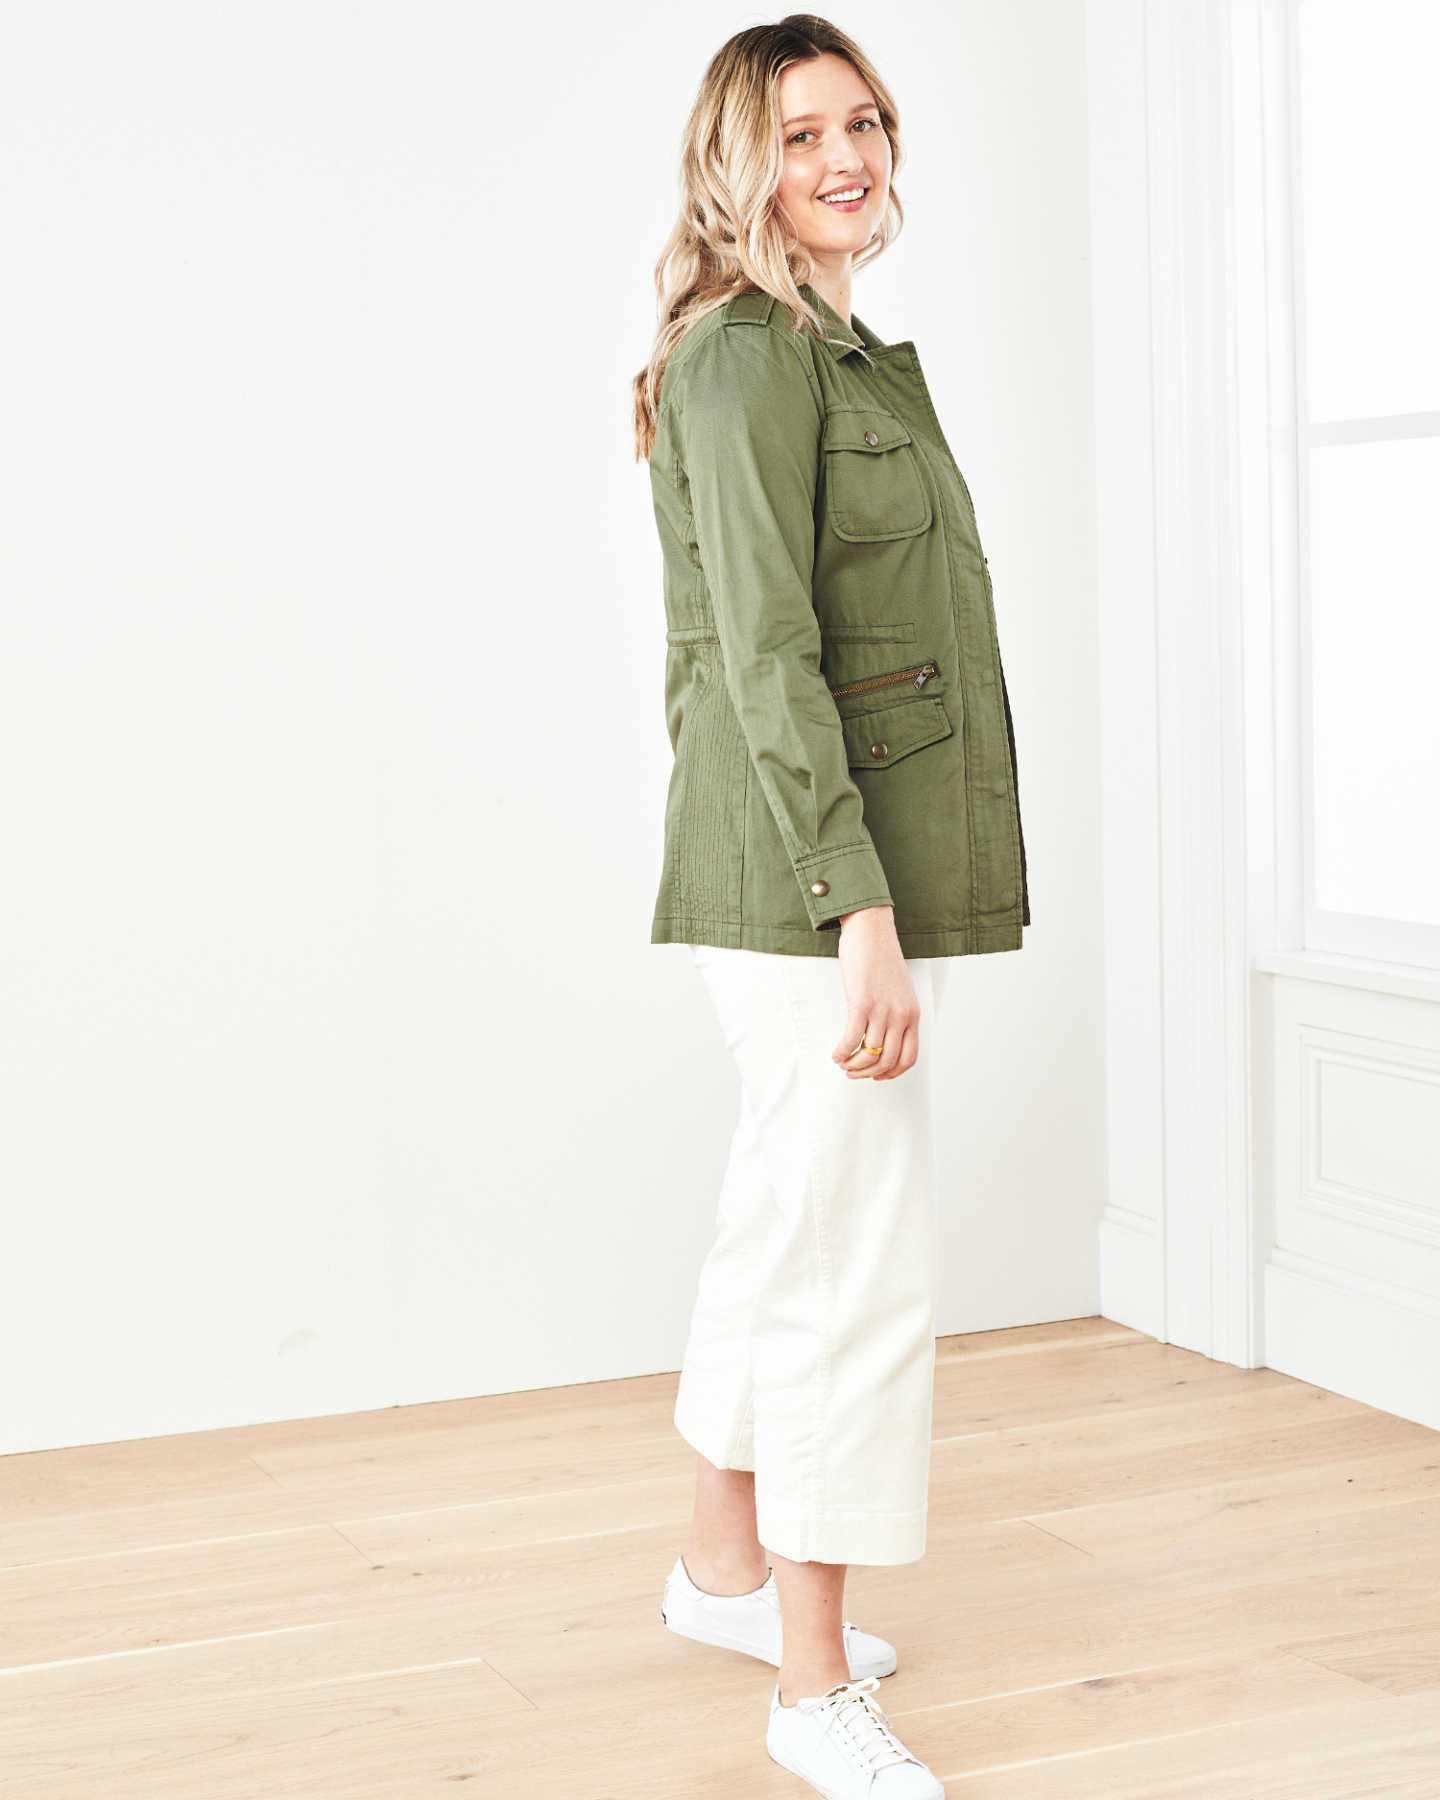 Cotton Twill Utility Jacket - Olive - 4